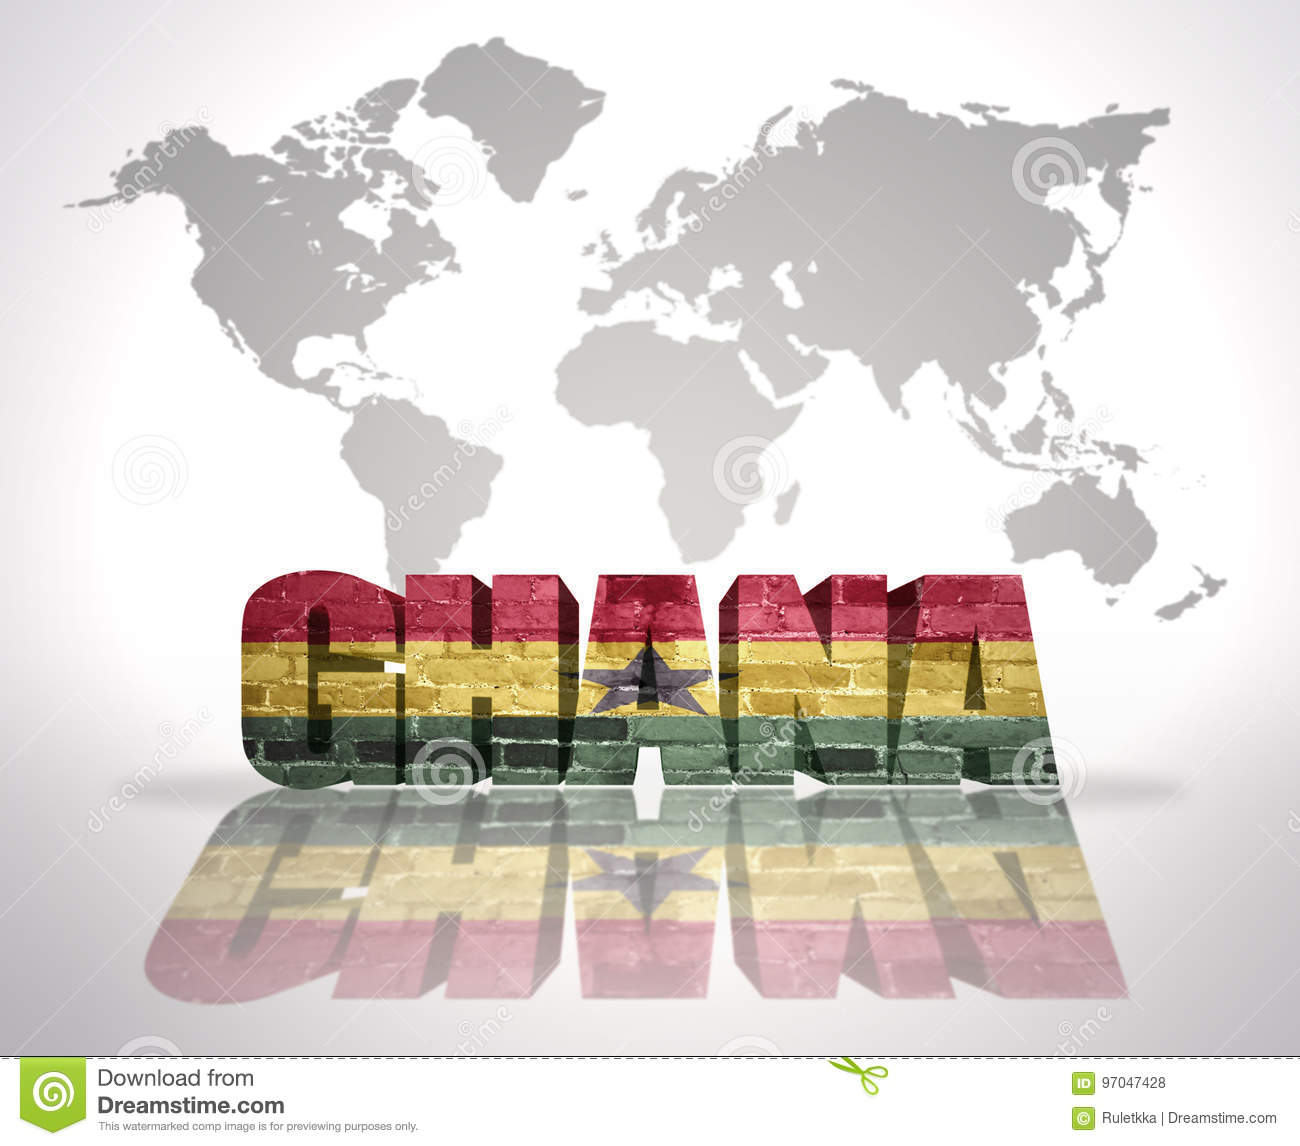 Ghana On A World Map.Word Ghana On A World Map Background Stock Illustration